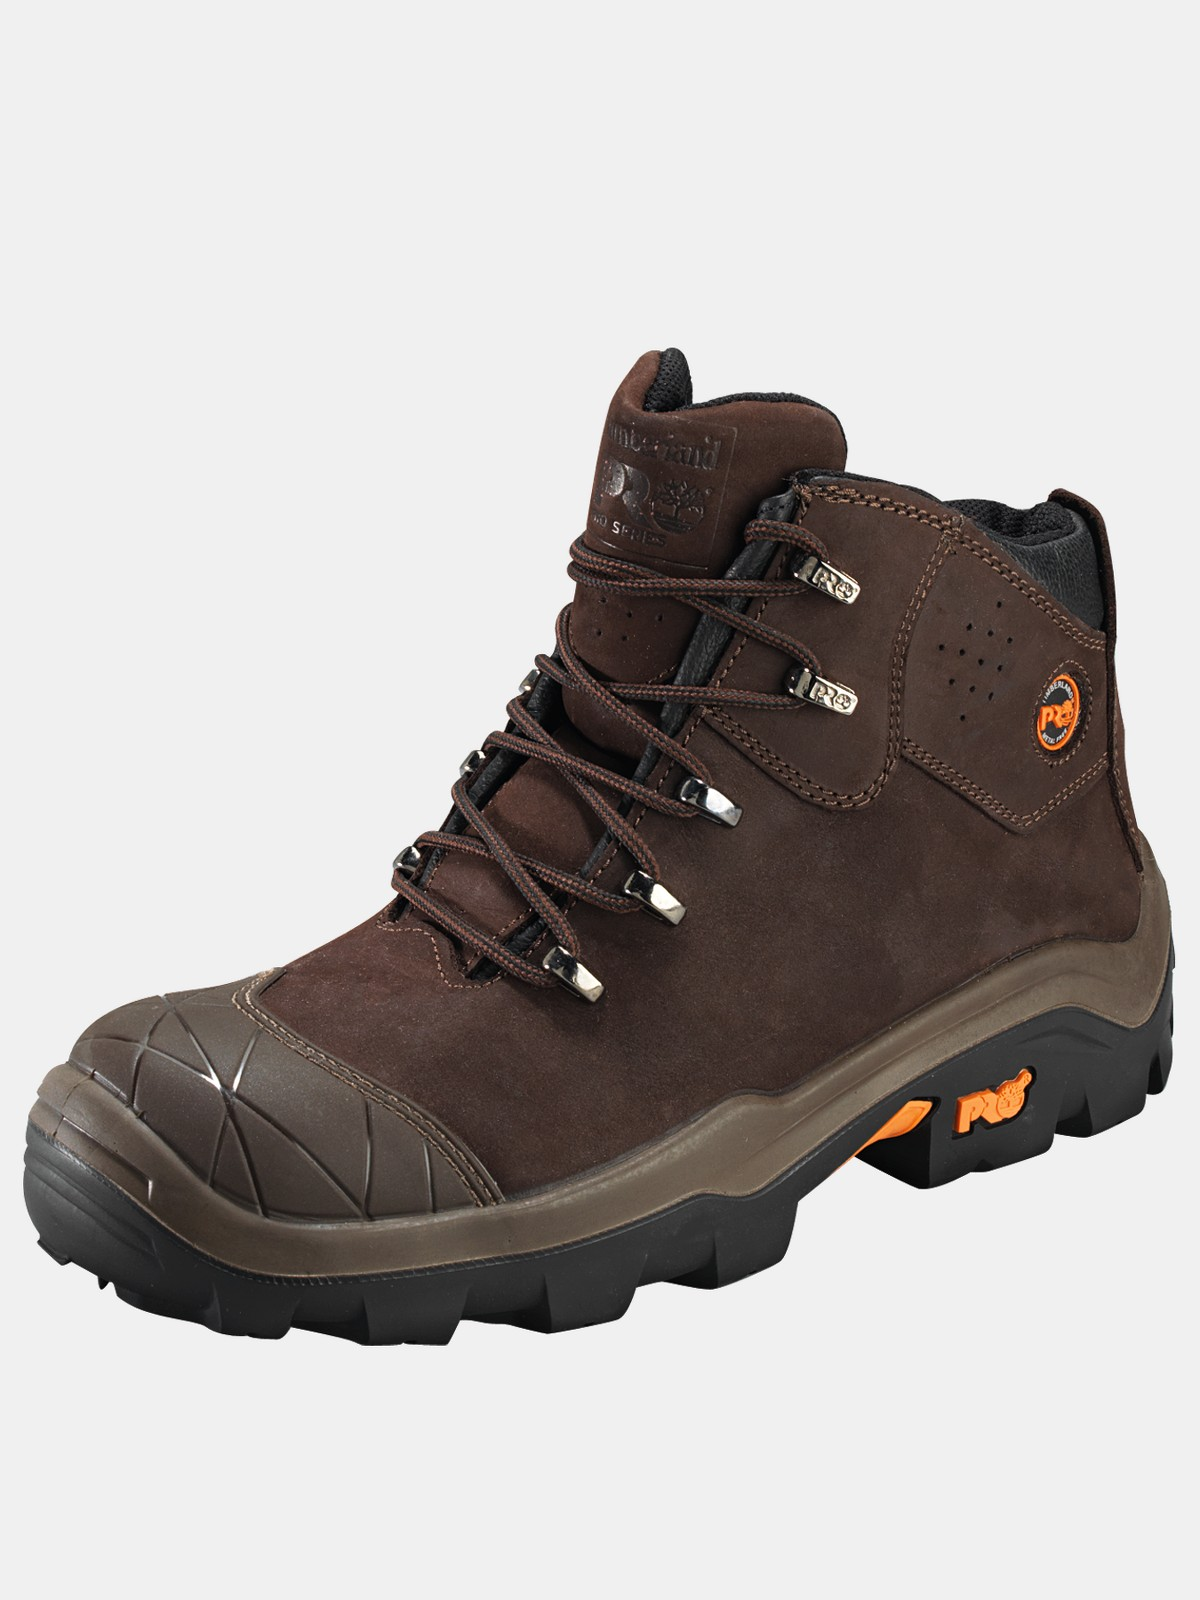 Timberland Boots For Men 2012 Timberland Snyders Men...